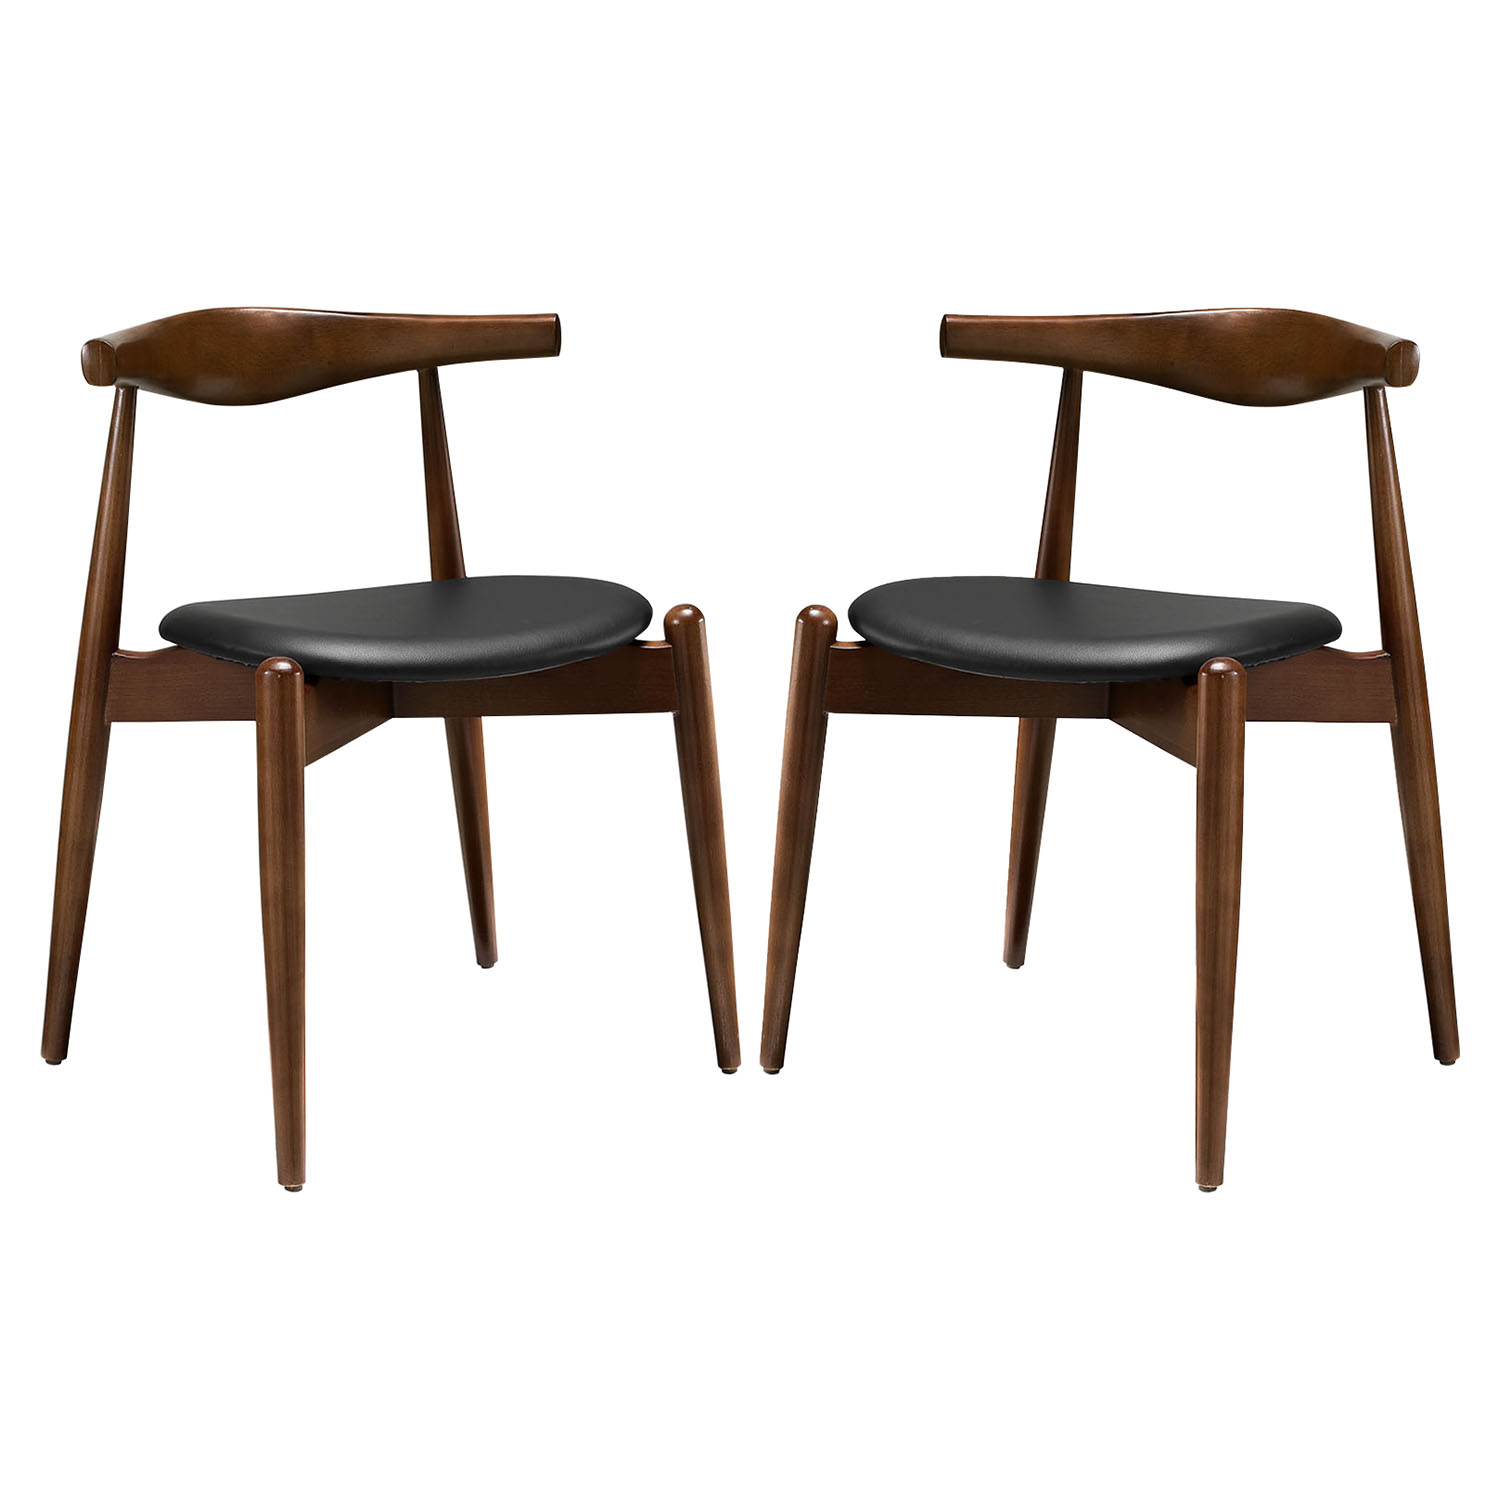 Stalwart Dining Side Chair - Wood Frame, Dark Walnut, Black (Set of 2)